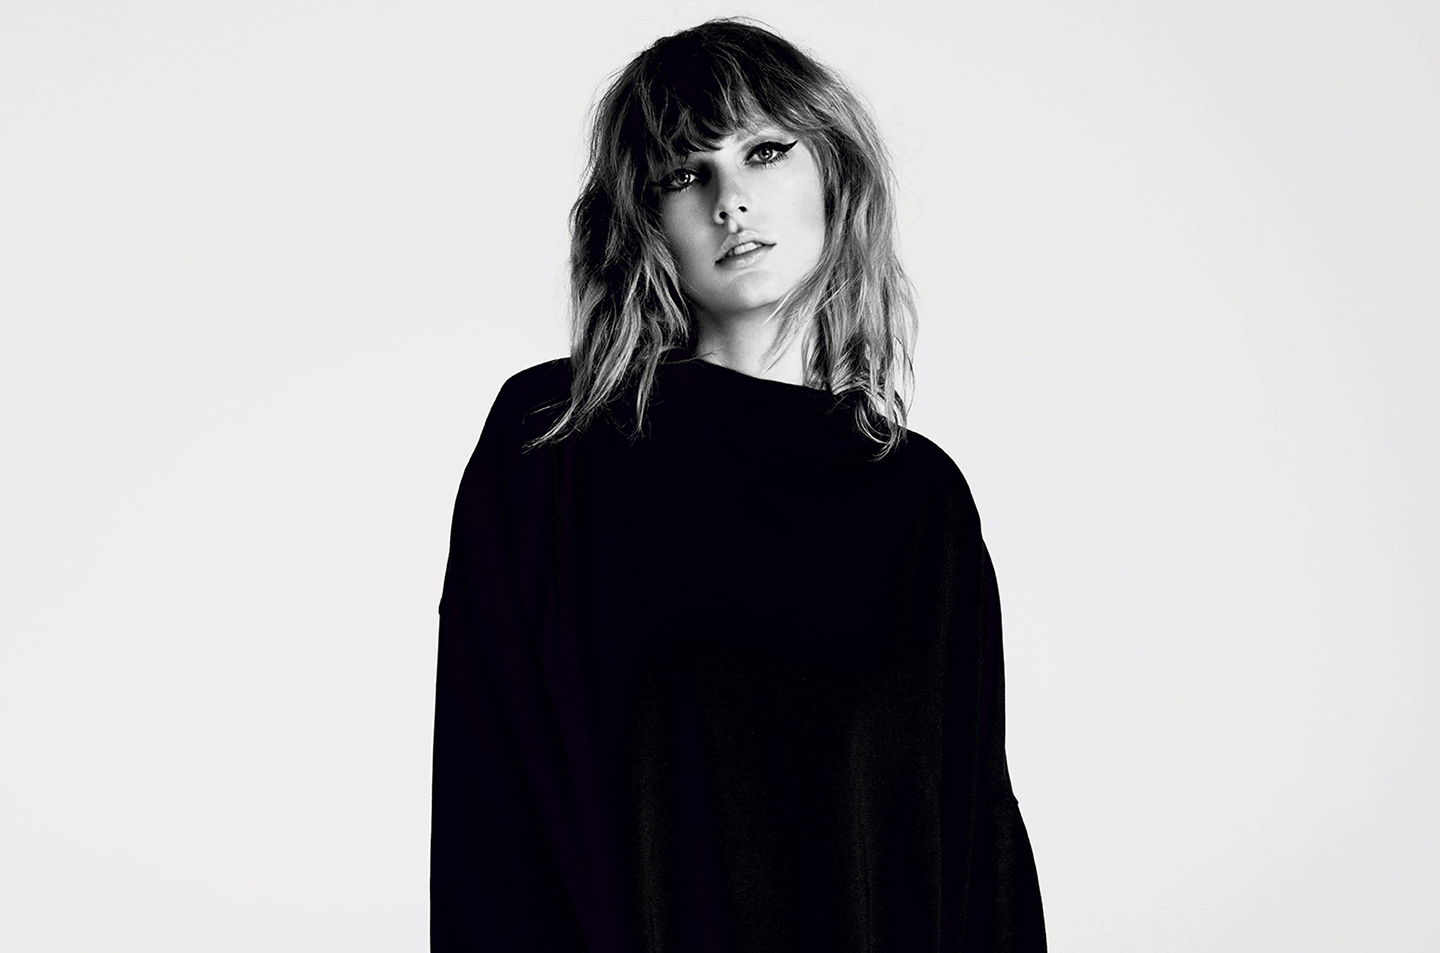 Blog-Mode-And-The-City-Lifestyle-Cinq-Petites-Choses-246-taylor-swift